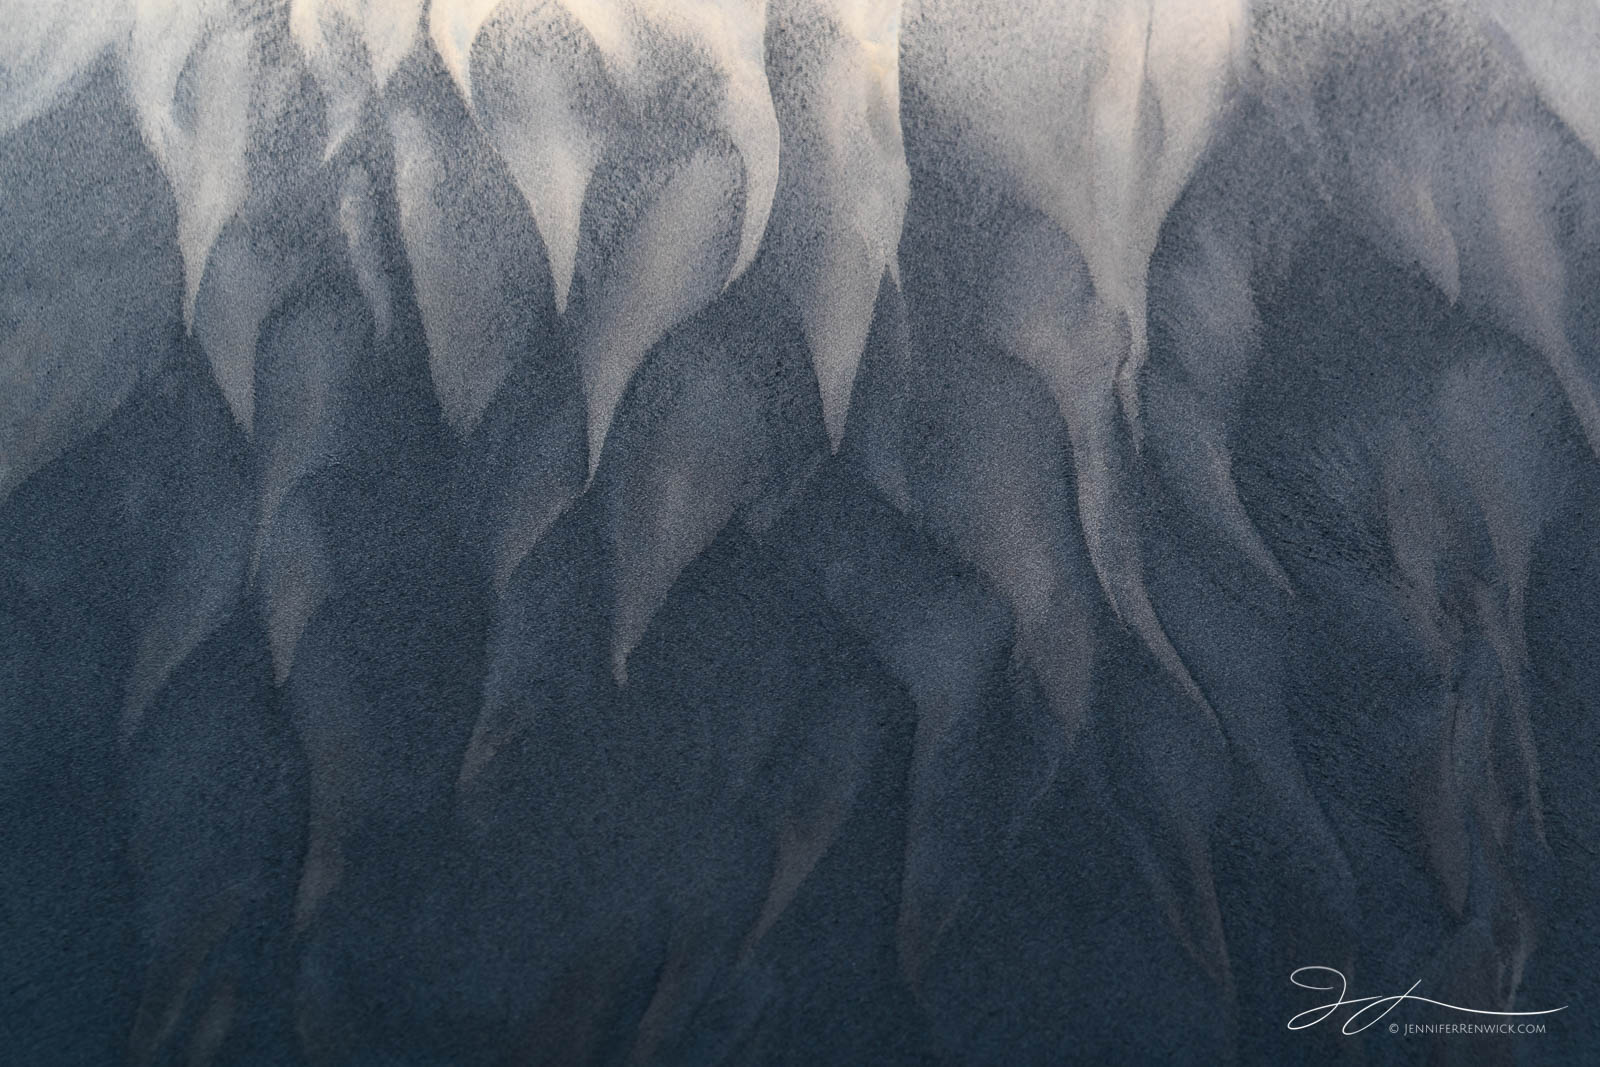 Fletchers Cove, abstract photography, California, sand, patterns, southern California, waves, beach, texture, ocean, Solana Beach...